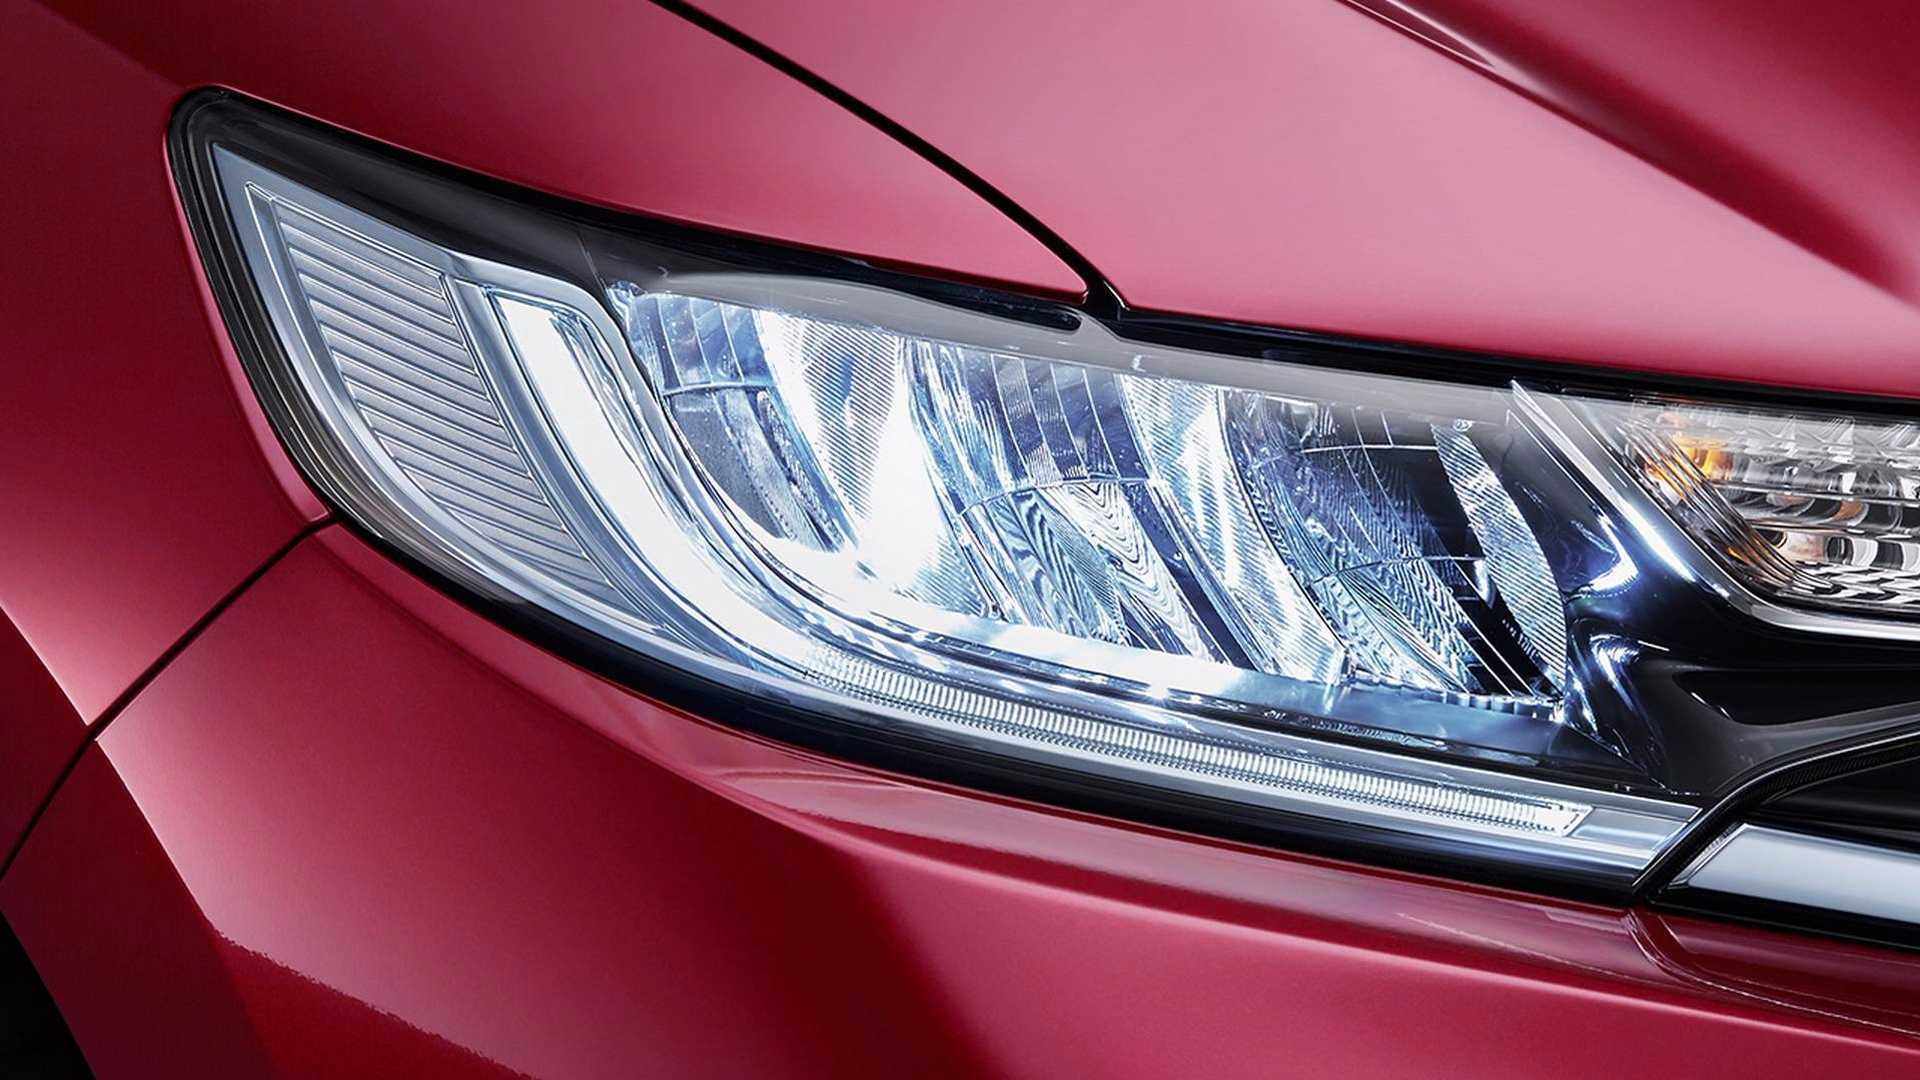 Where Is Honda Made >> 2018 Honda Fit Facelift Revealed by Japanese Microsite - autoevolution